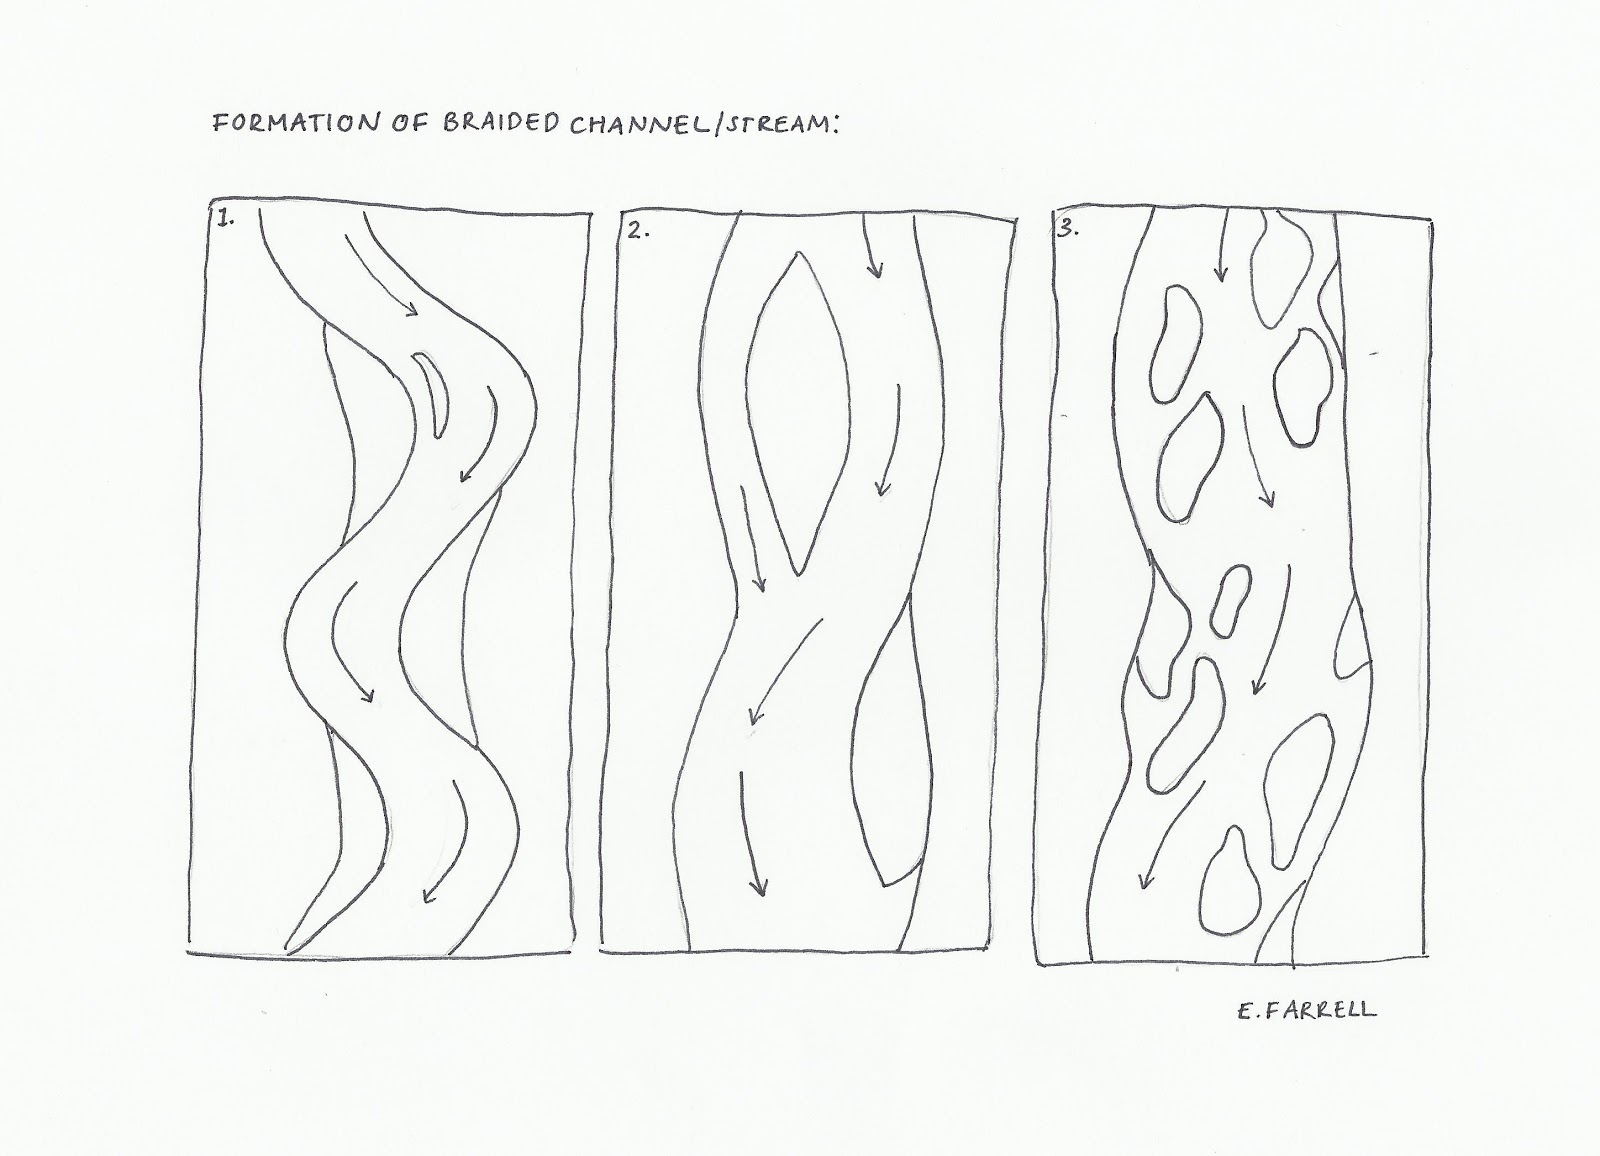 Formation of braided channelsstreams phys geog formation of braided channelsstreams pooptronica